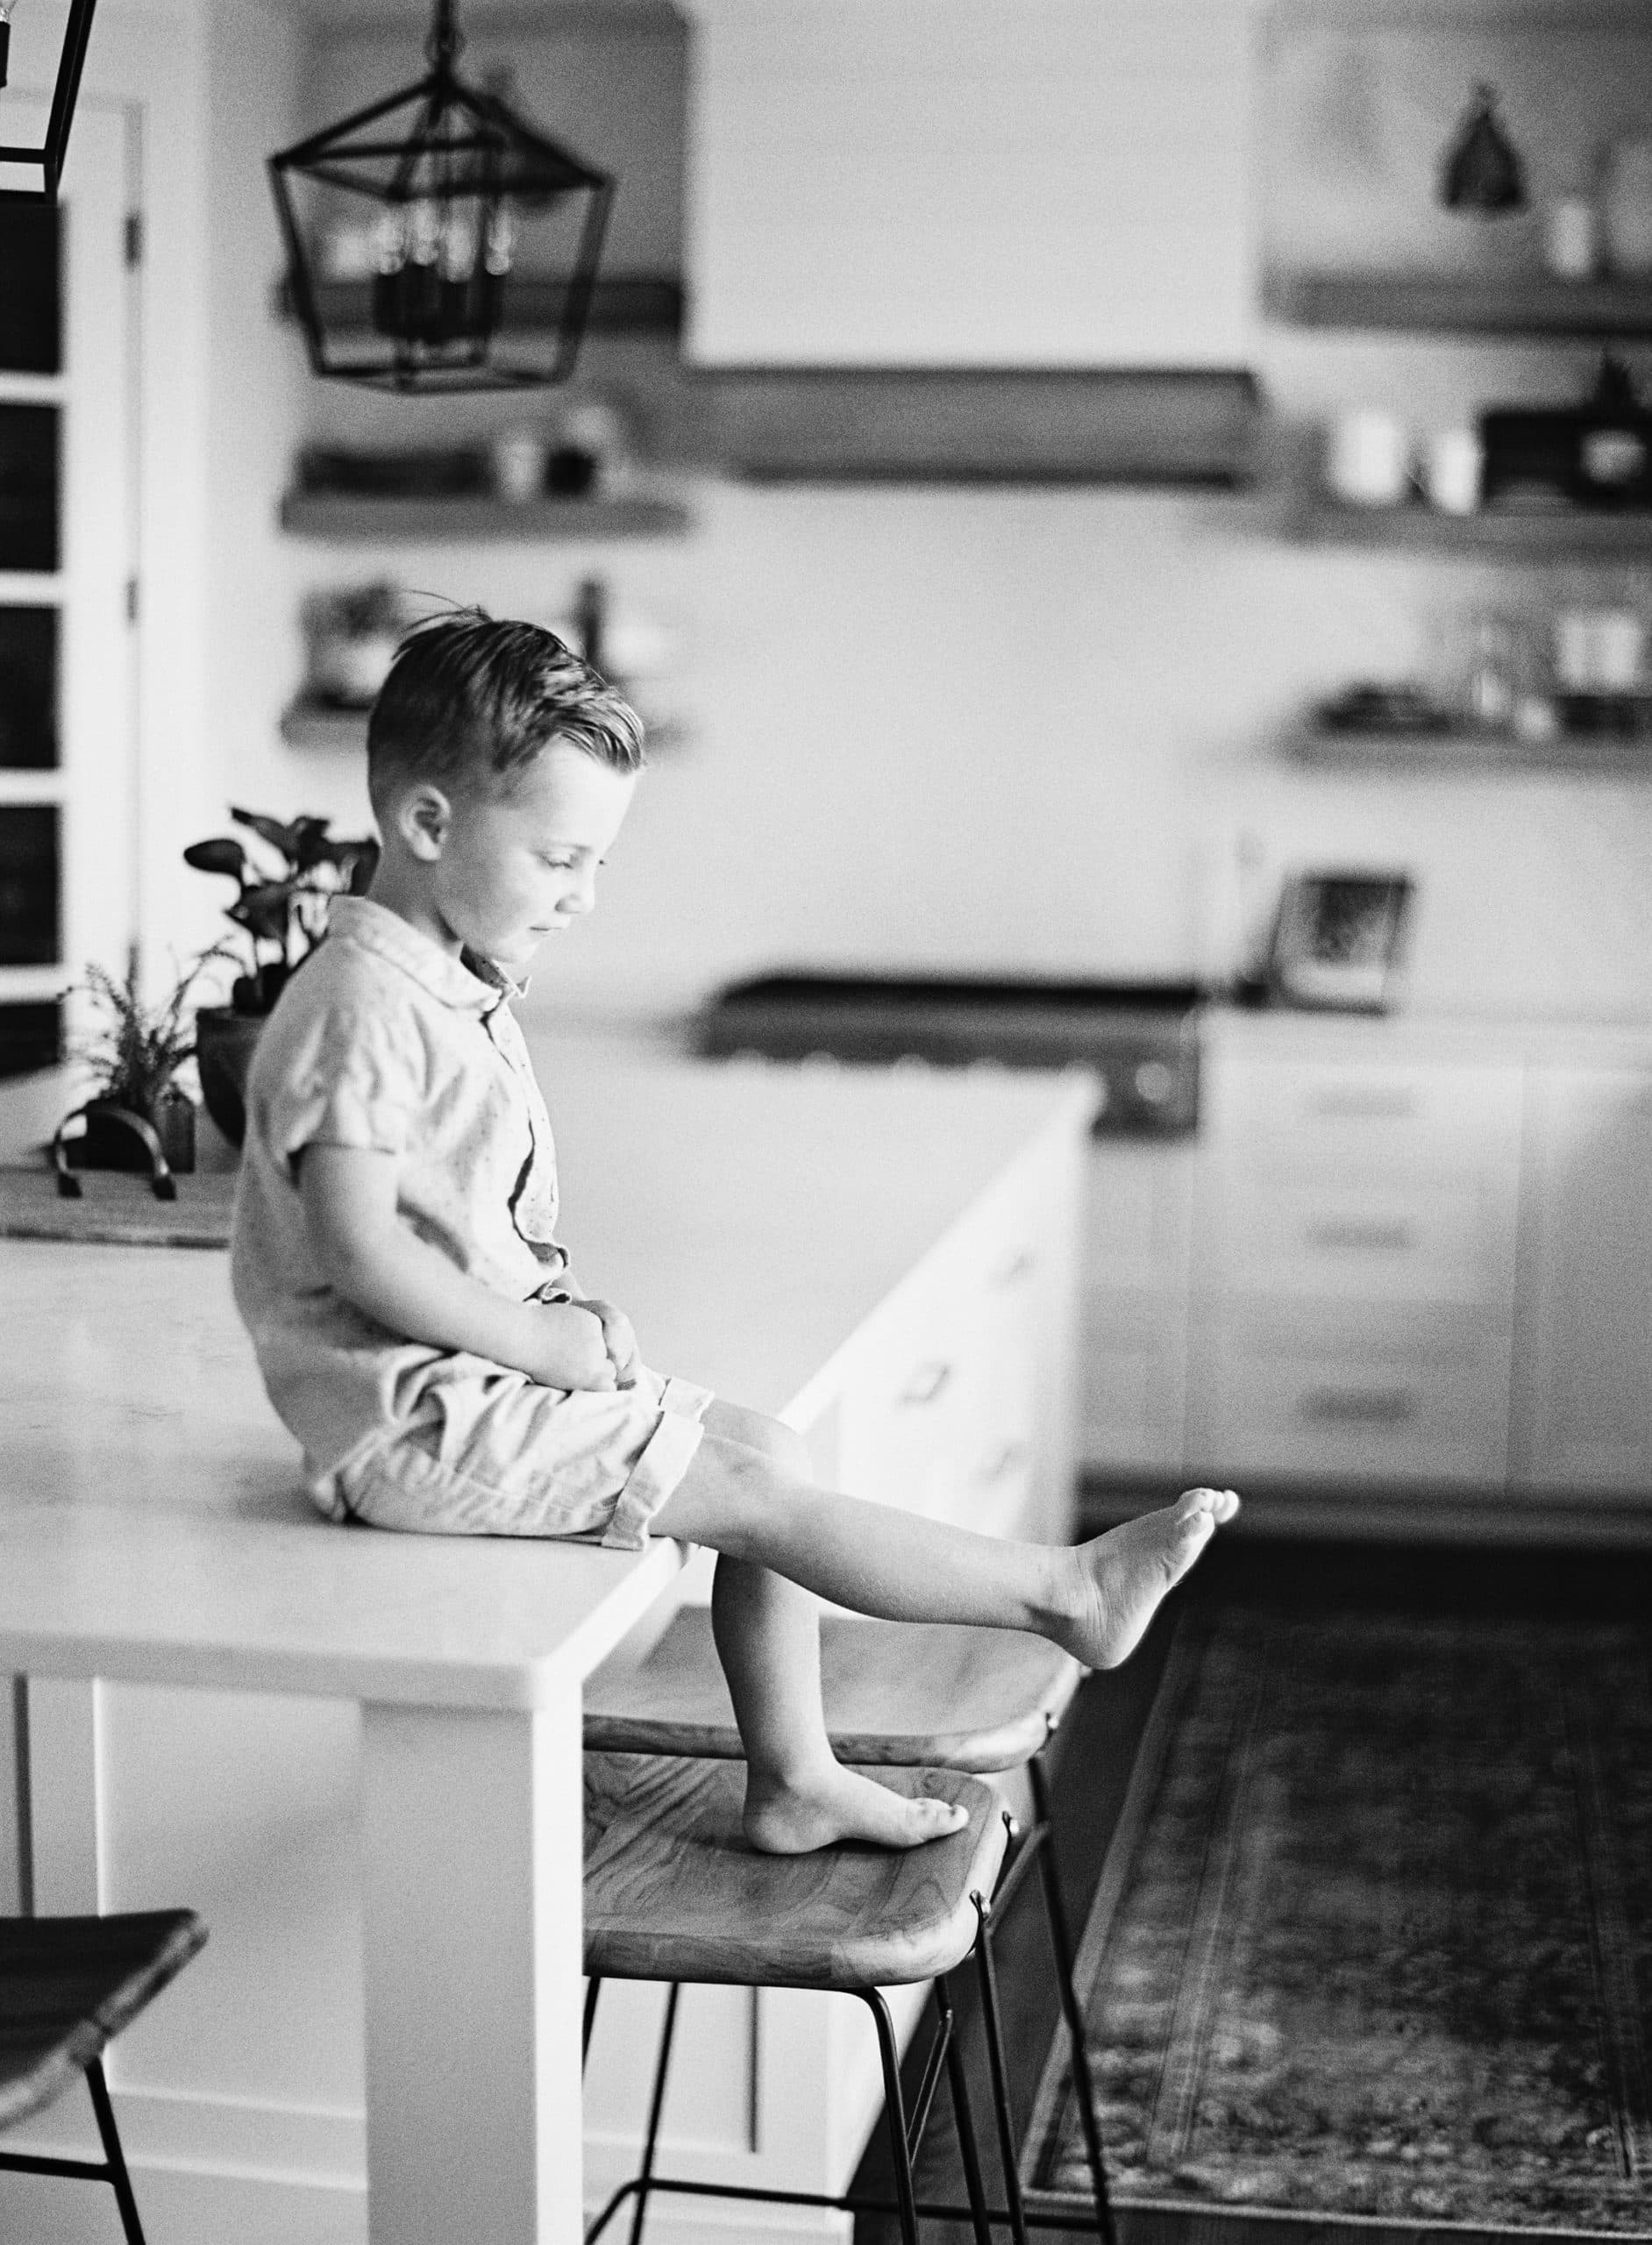 A photo of a young boy sitting on the counter looking at his toes.